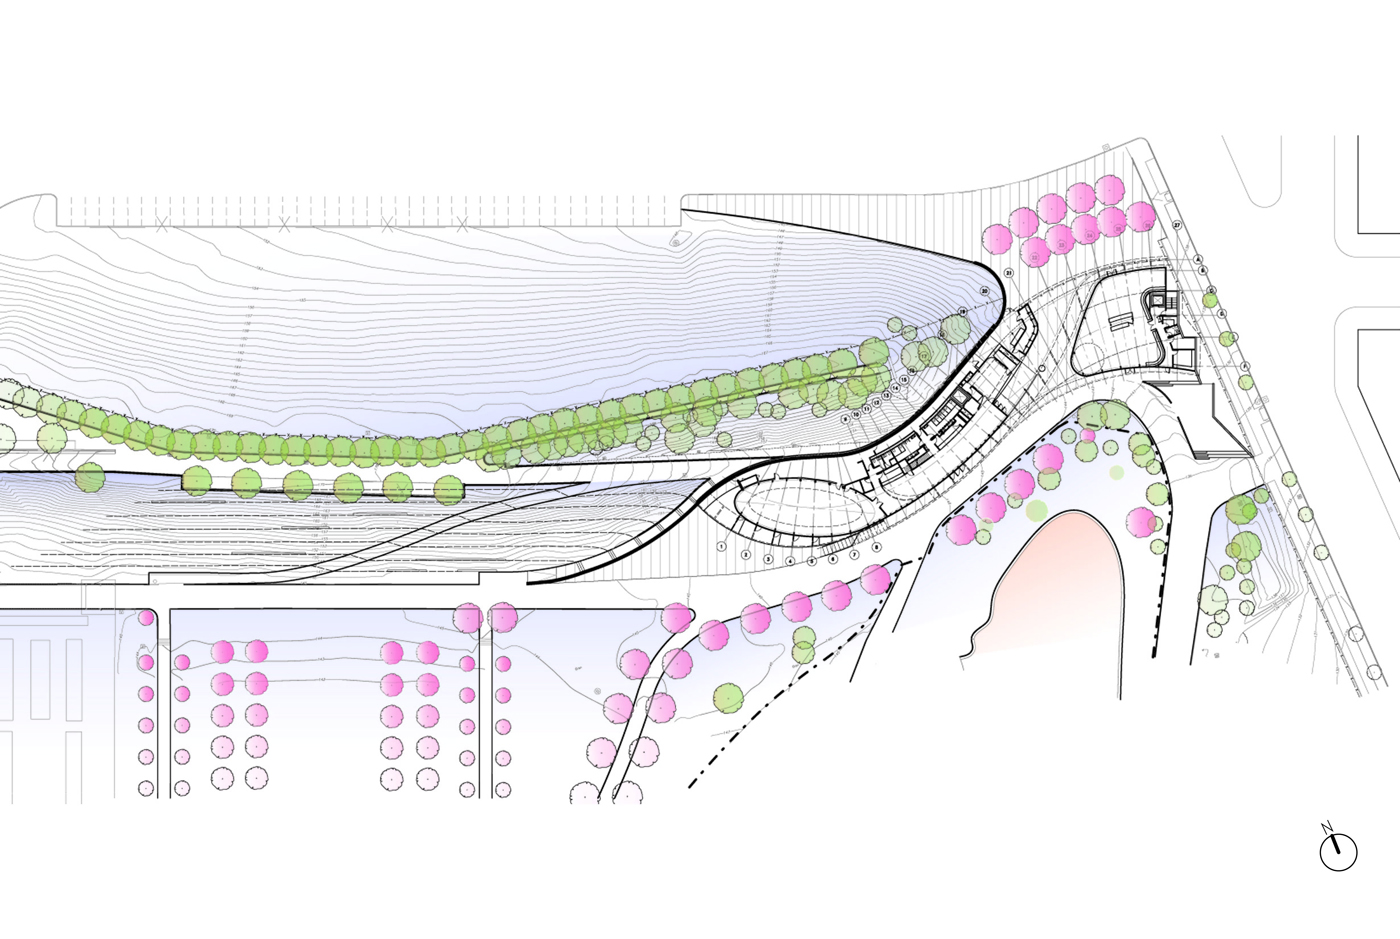 Iit college of architecture - Small event space brooklyn plan ...